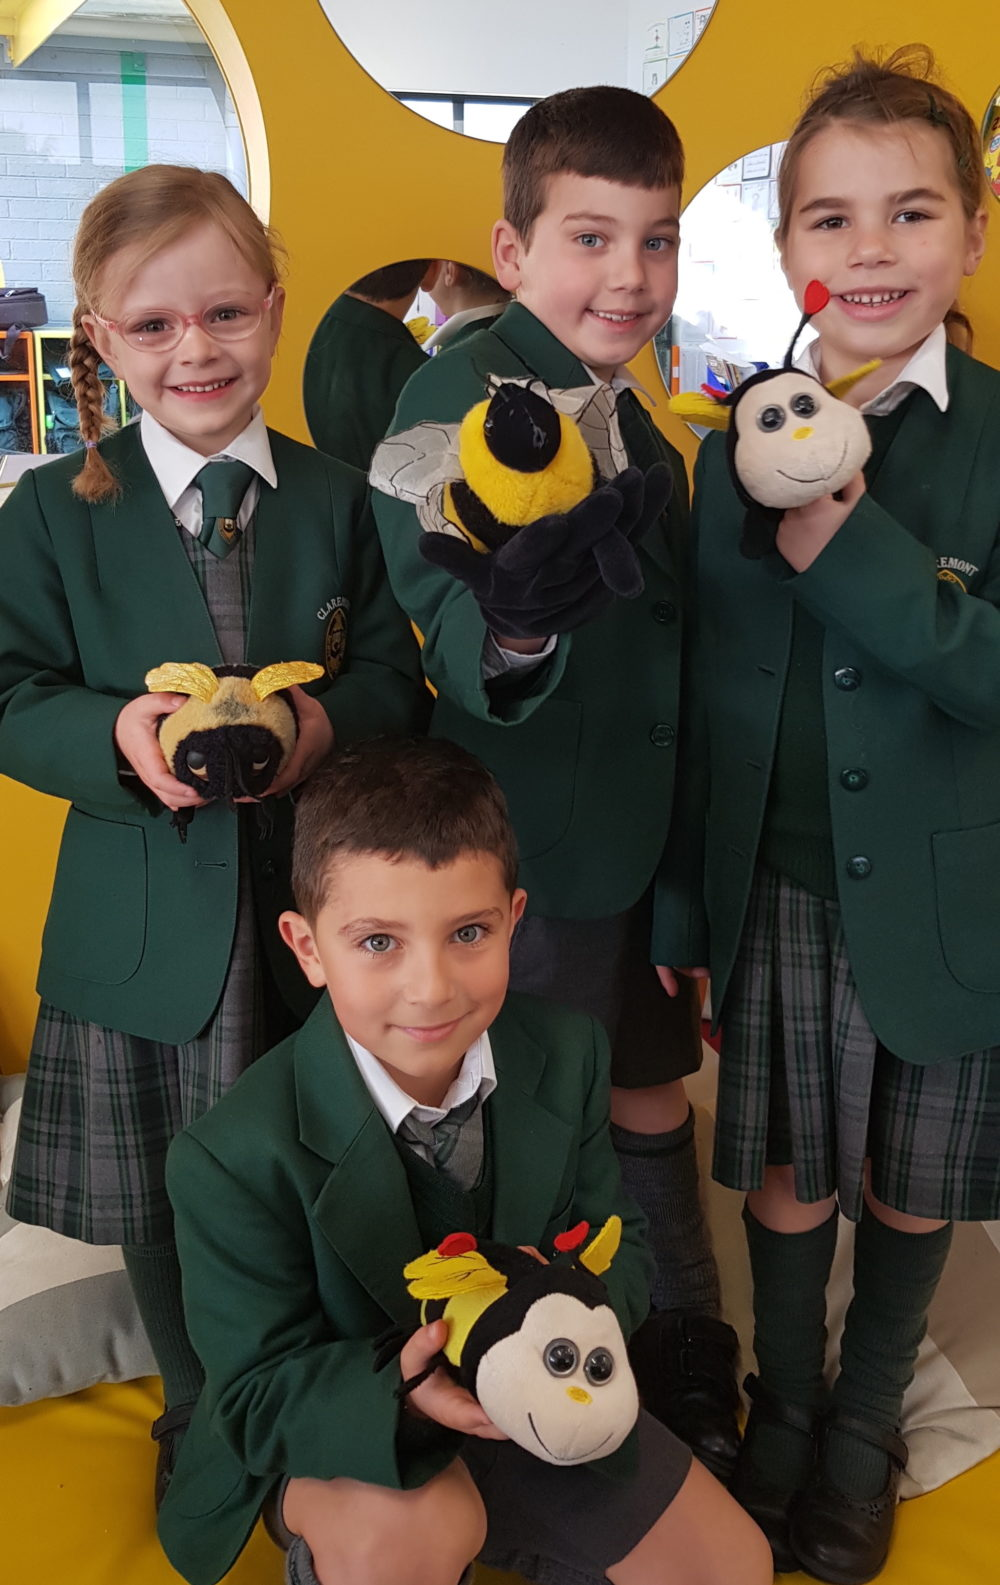 Year-1-kids-with-bees.jpg?mtime=20200807094514#asset:19600:midWidth